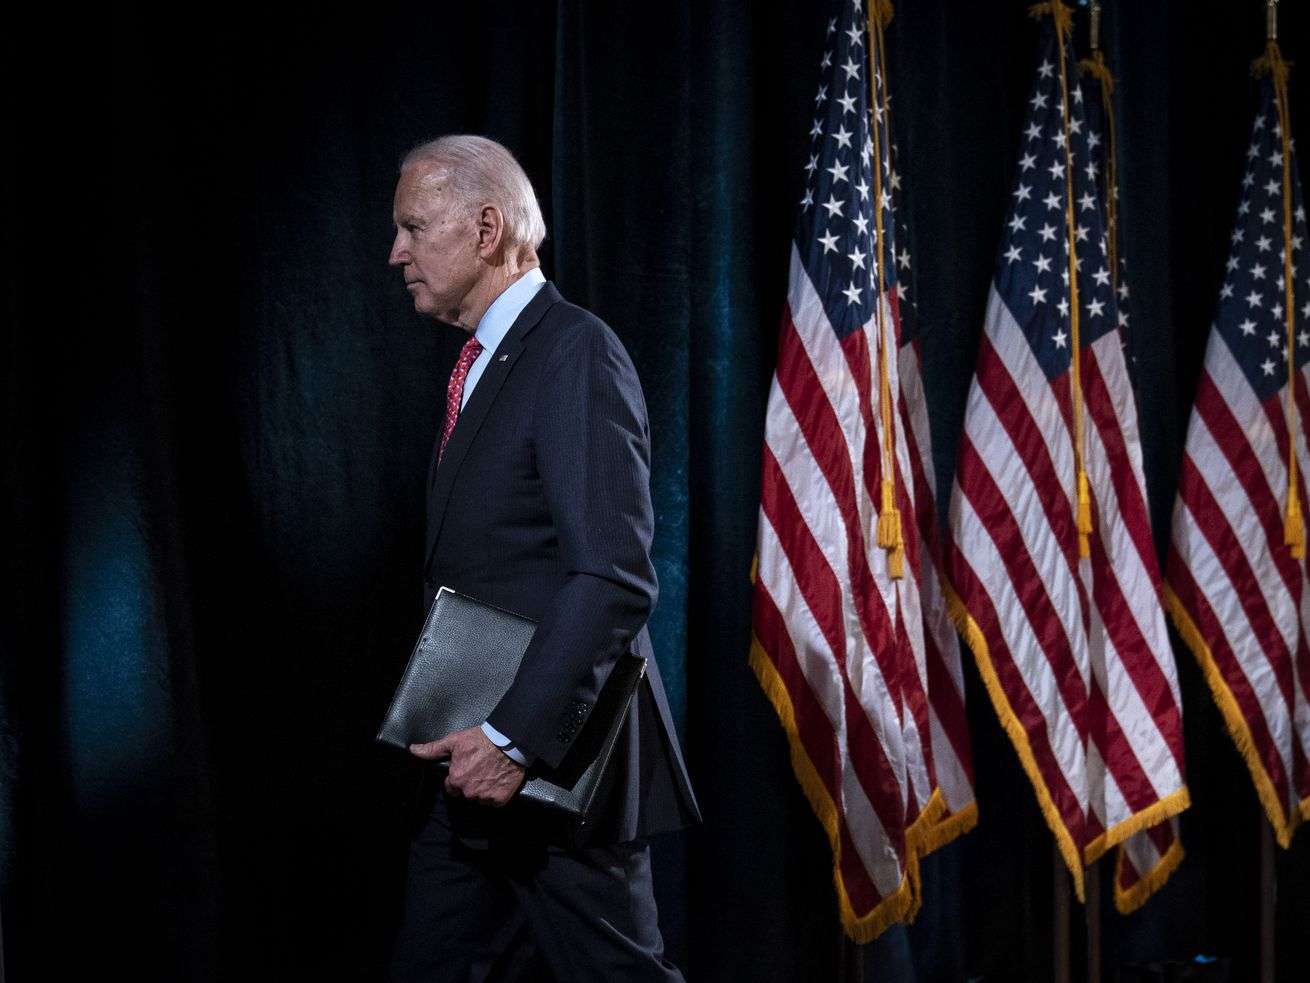 Biden clutches a leather binder as he walks past three US flags, while wearing a dark suit.